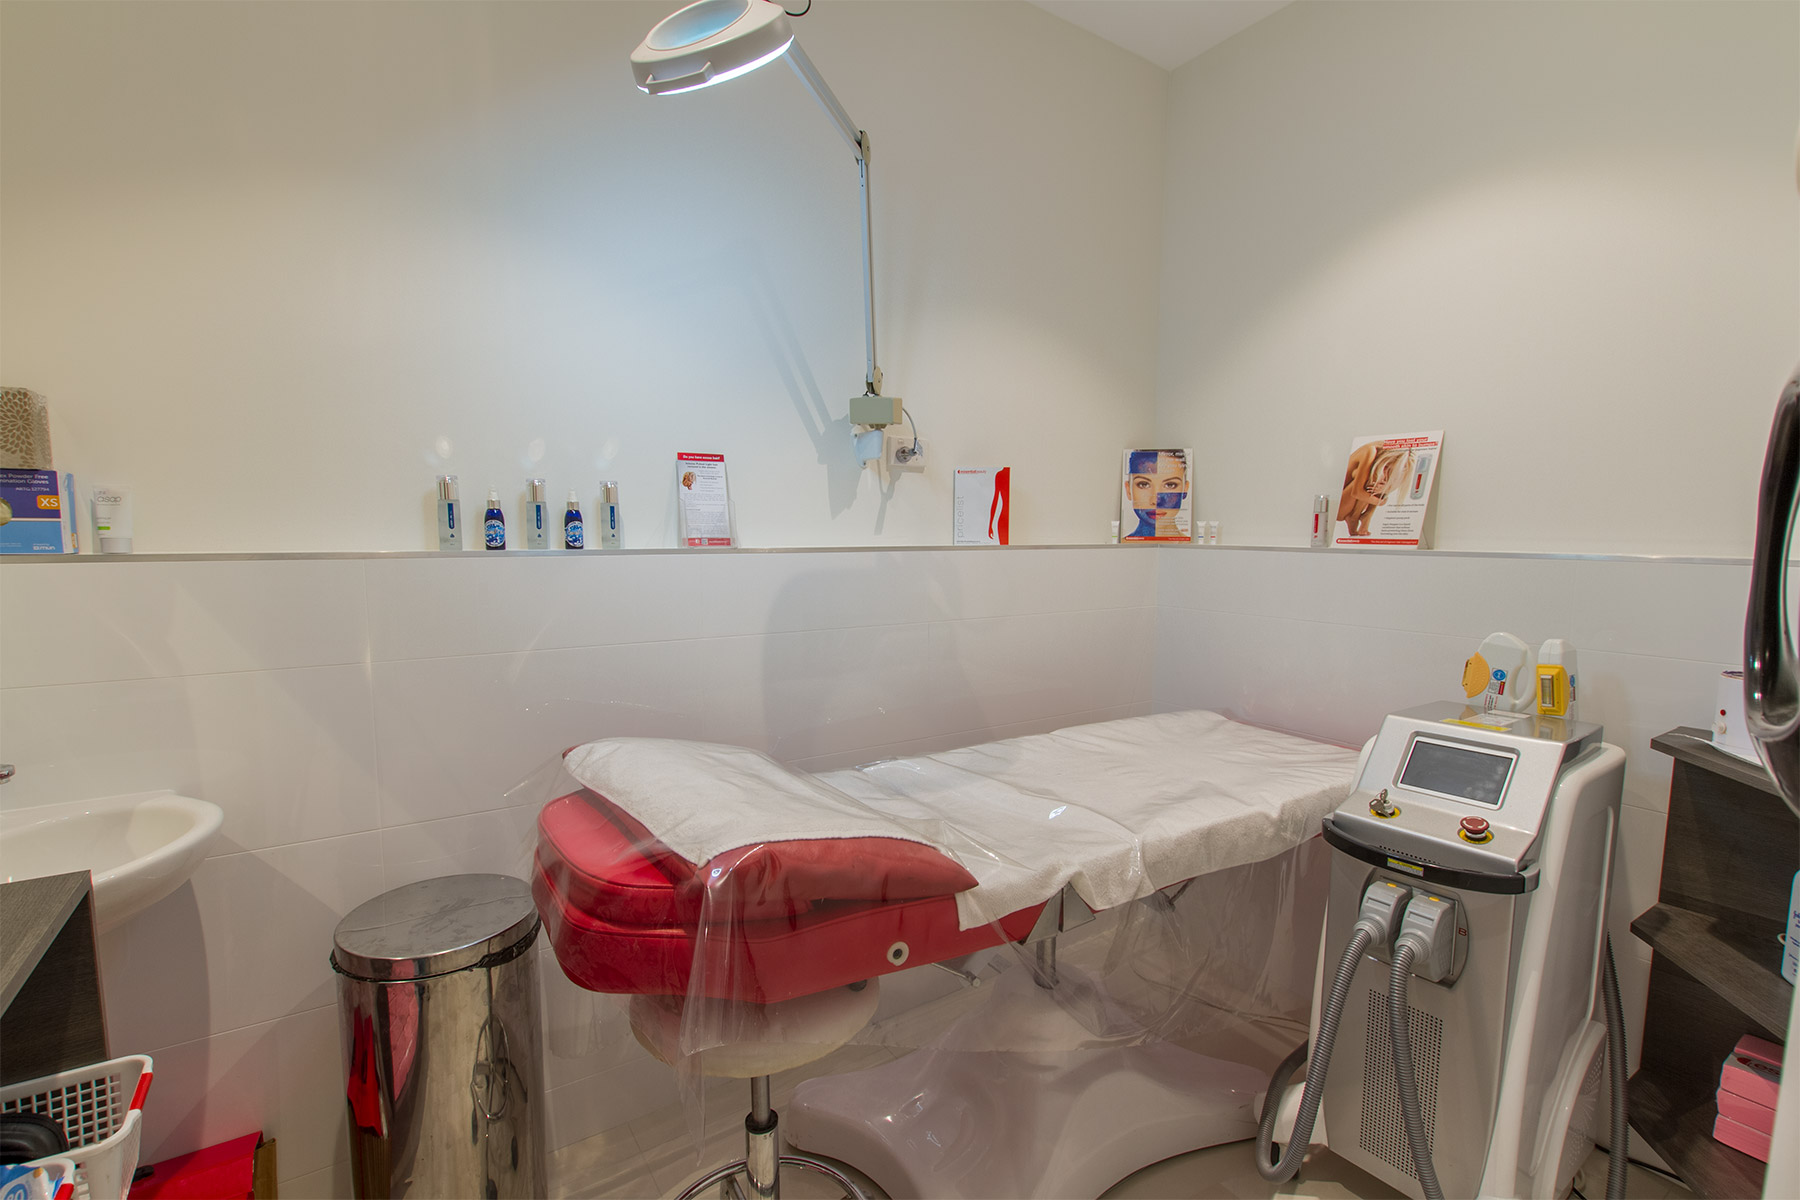 hurstville-essential-beauty-franchise-opportunity-success-is-an-email-away-6